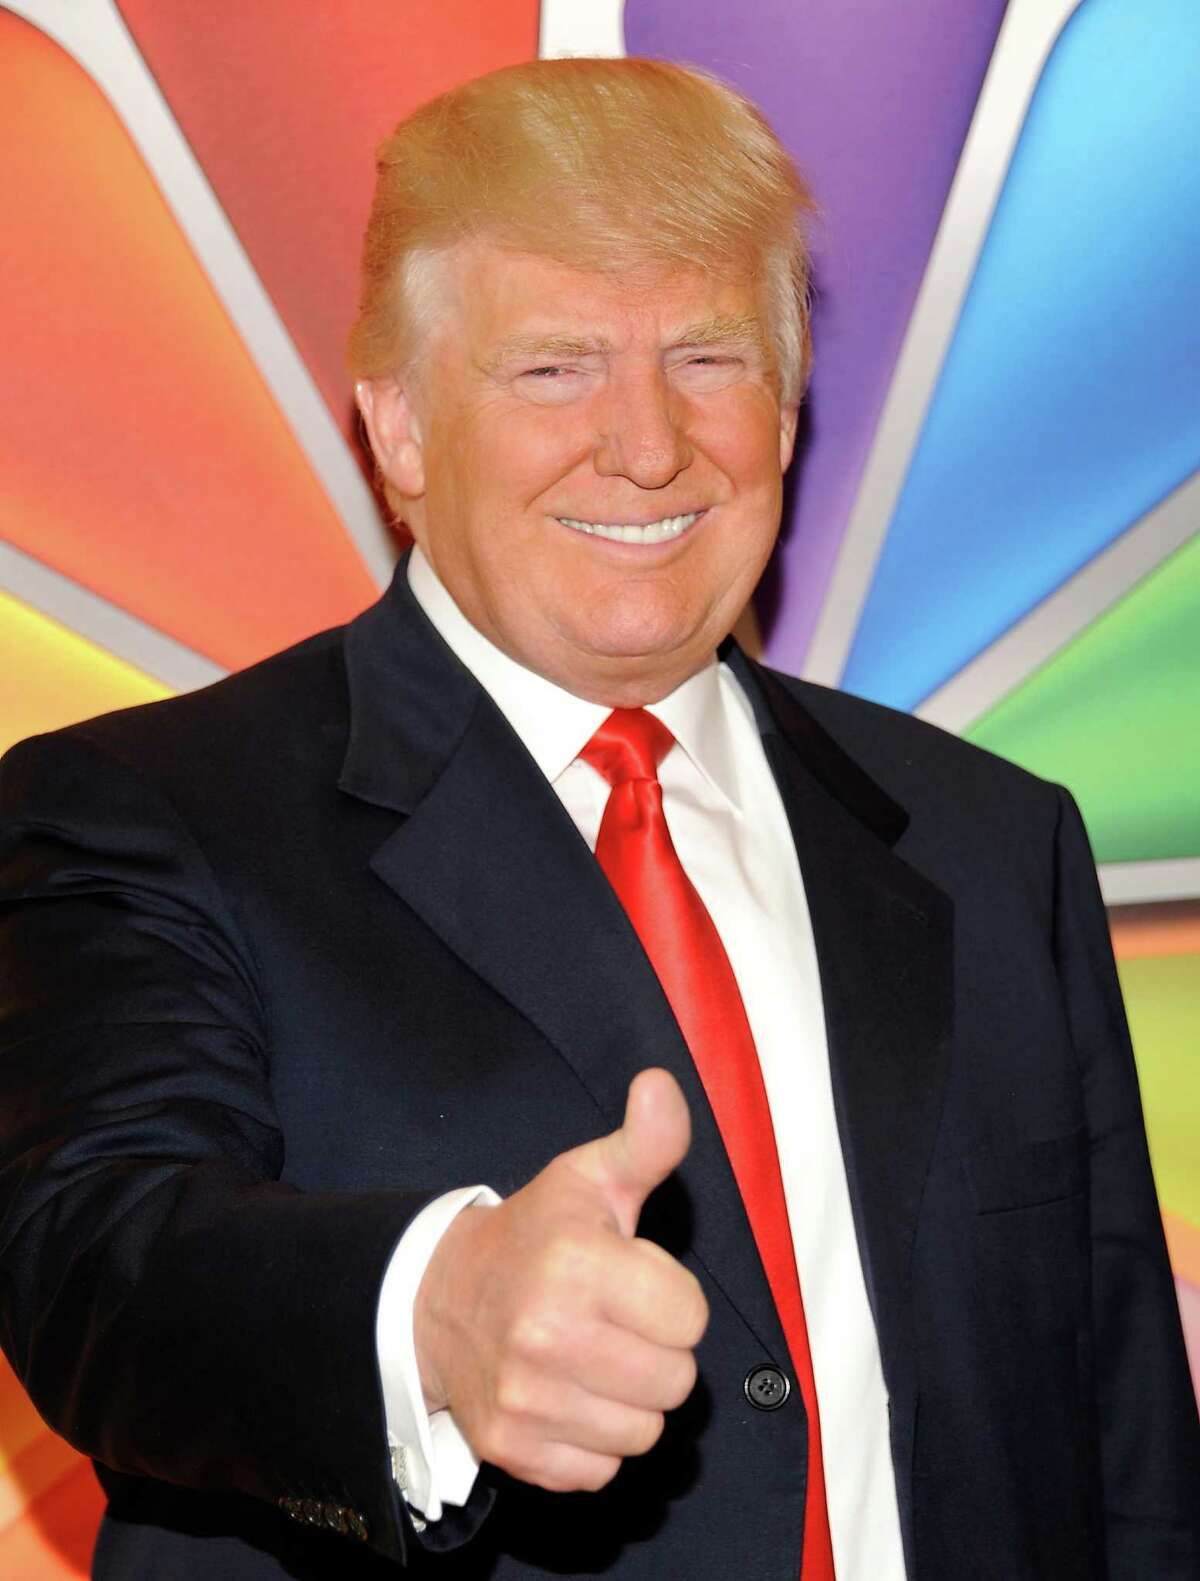 Just days later, NBC ended all business relationships with Trump